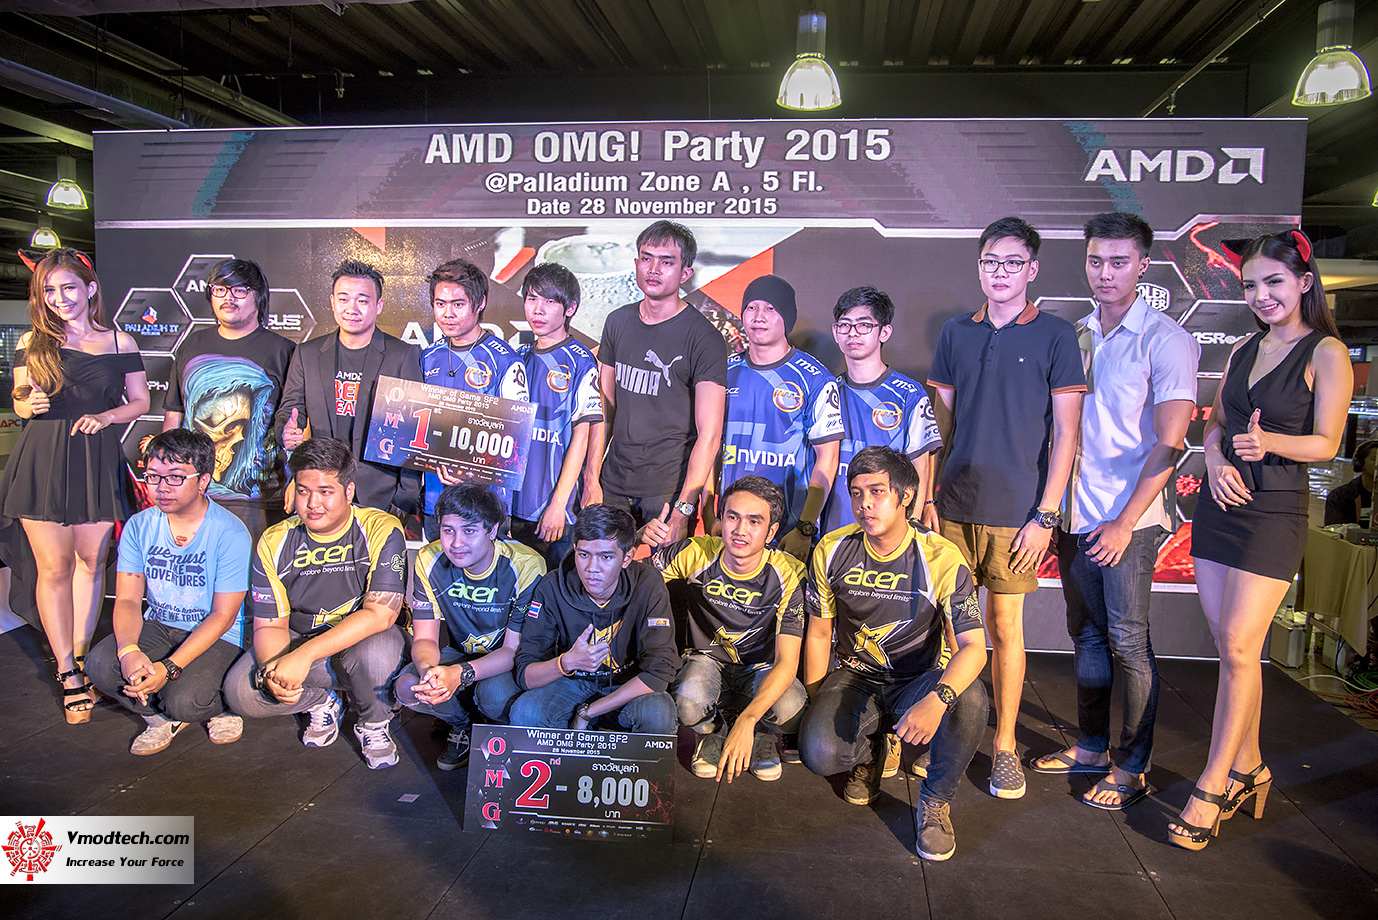 dsc 3207 AMD OMG! Party 2015 (AMD Overclock Modding Gaming Party 2015)